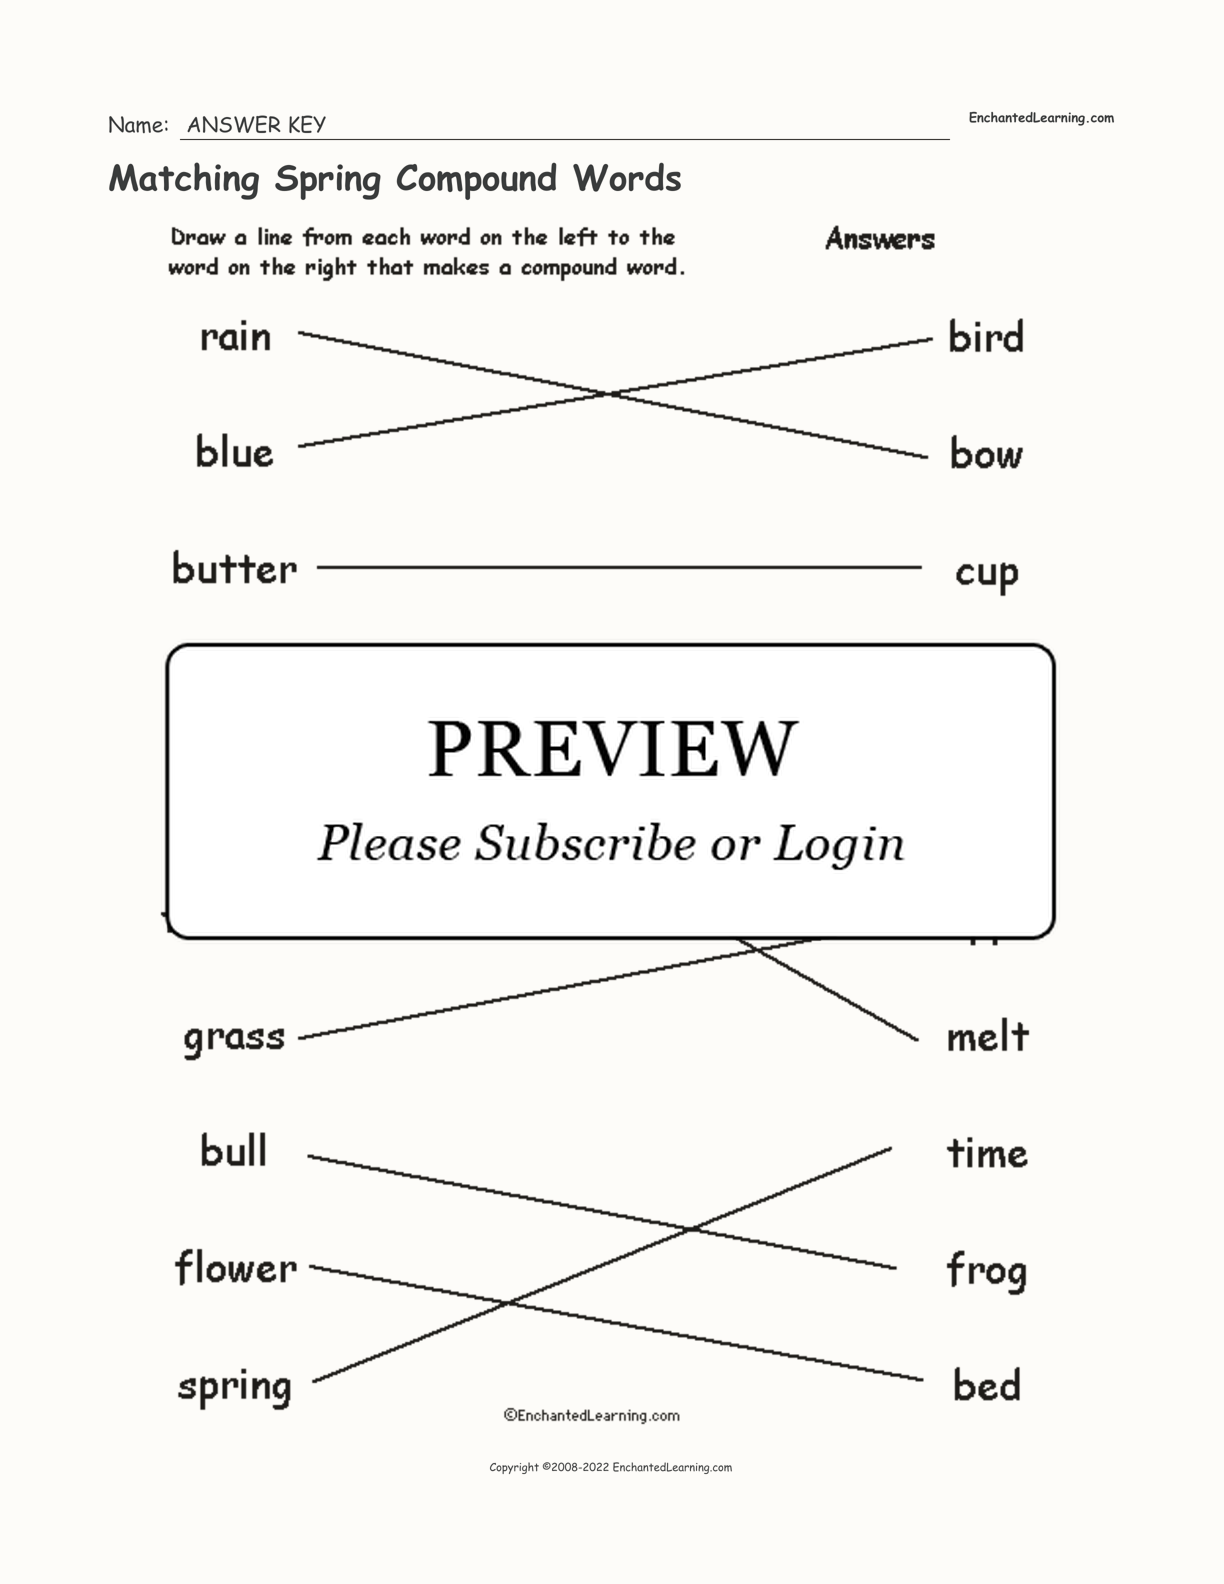 Matching Spring Compound Words interactive worksheet page 2